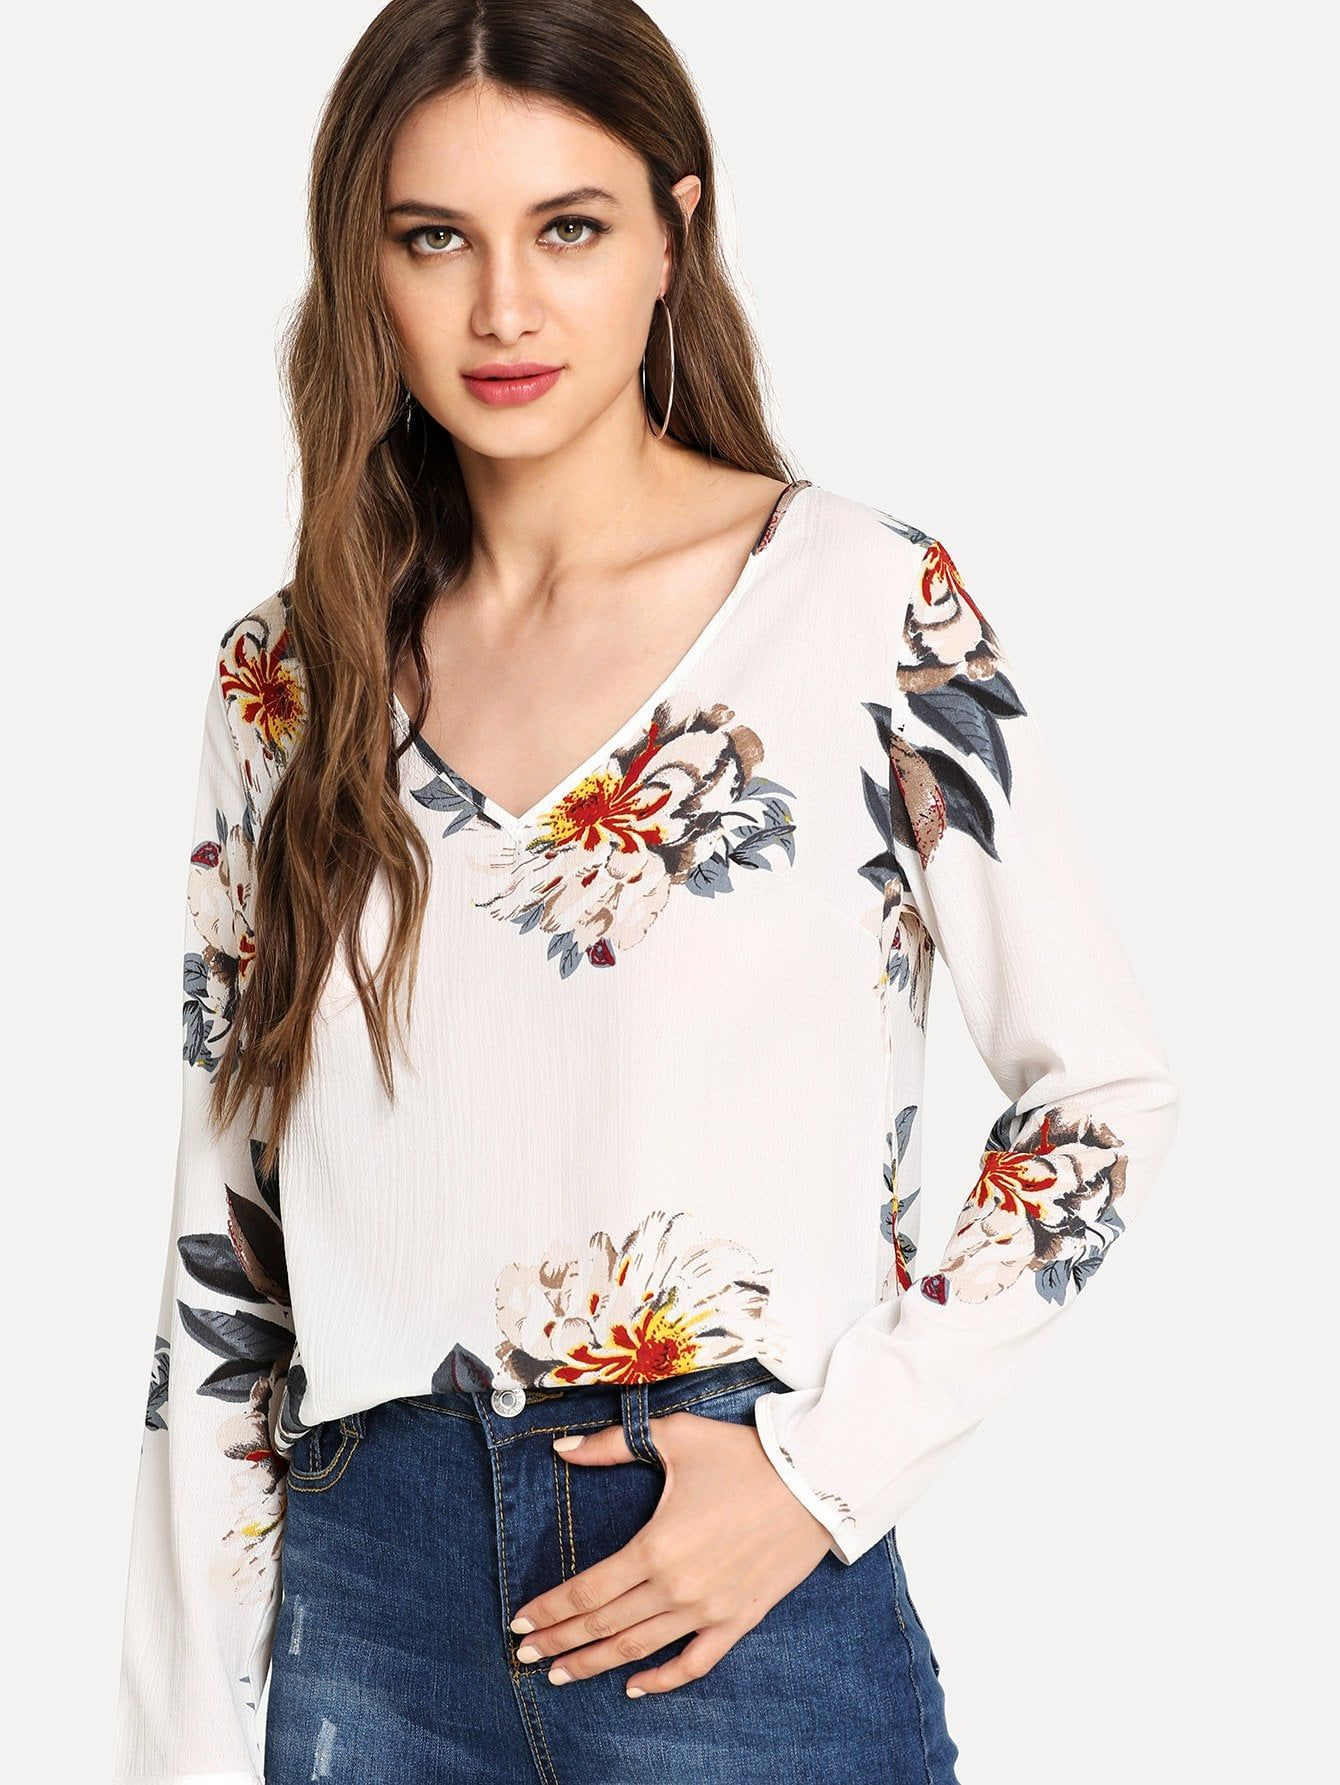 723c3faf54d8 Contrast Binding Roll Tab Sleeve Top in 2019 | Shein Fashion Style | Roll  up sleeves, Tops, Sleeves